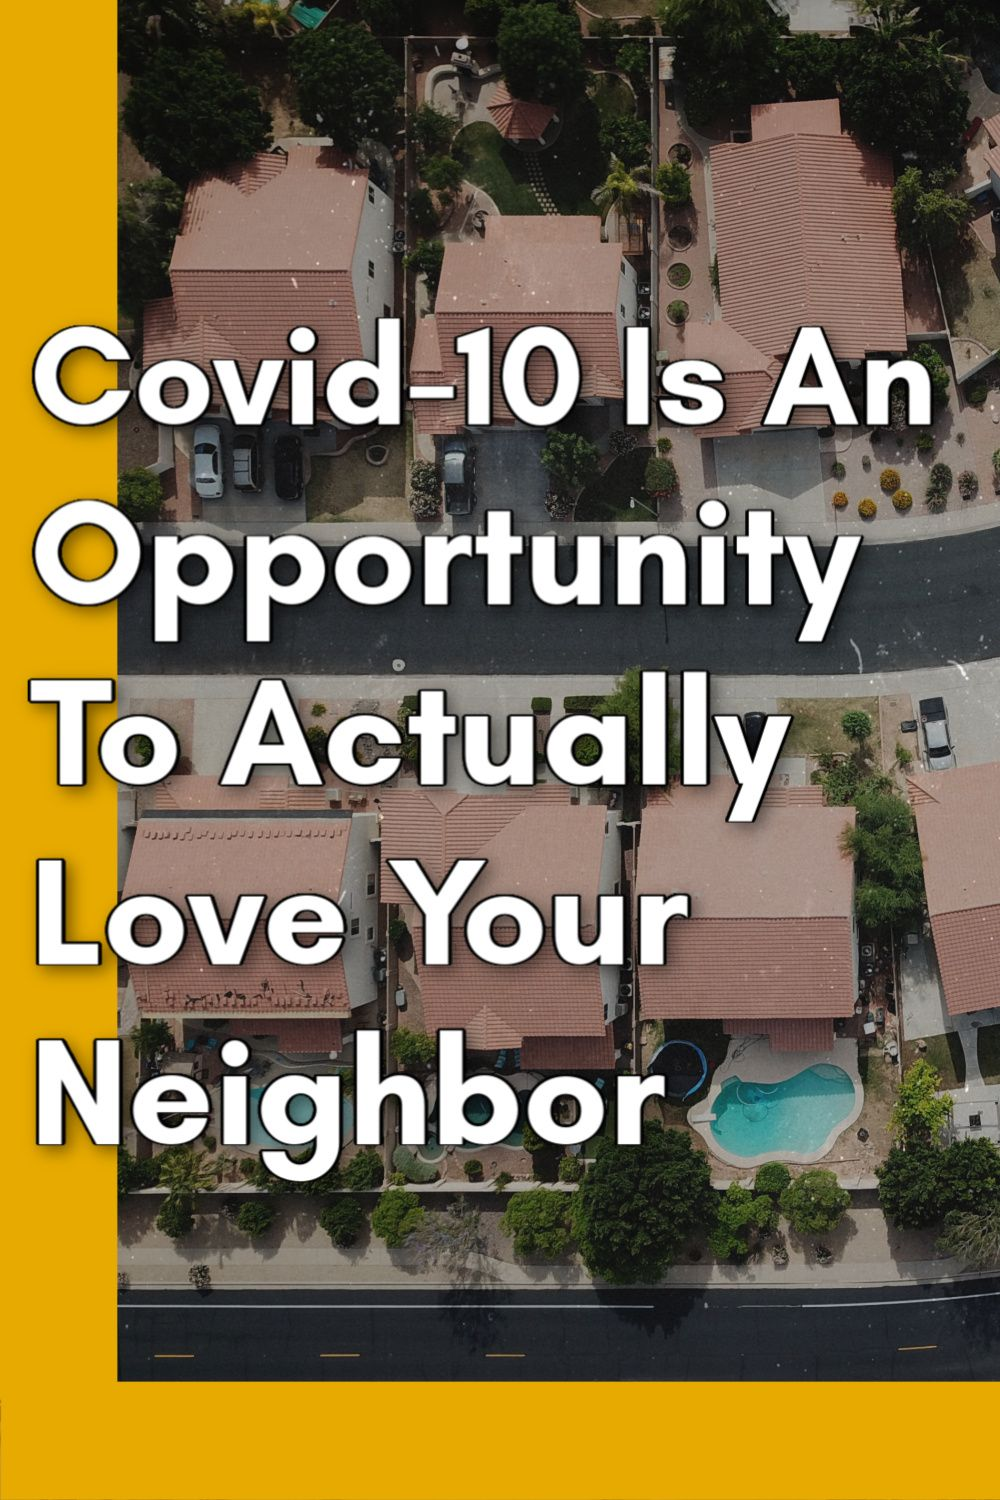 Here's how you can love your neighbor during the Coronavirus epidemic. #Godslove #Coronavirus #covid19 #loveyourneighbor